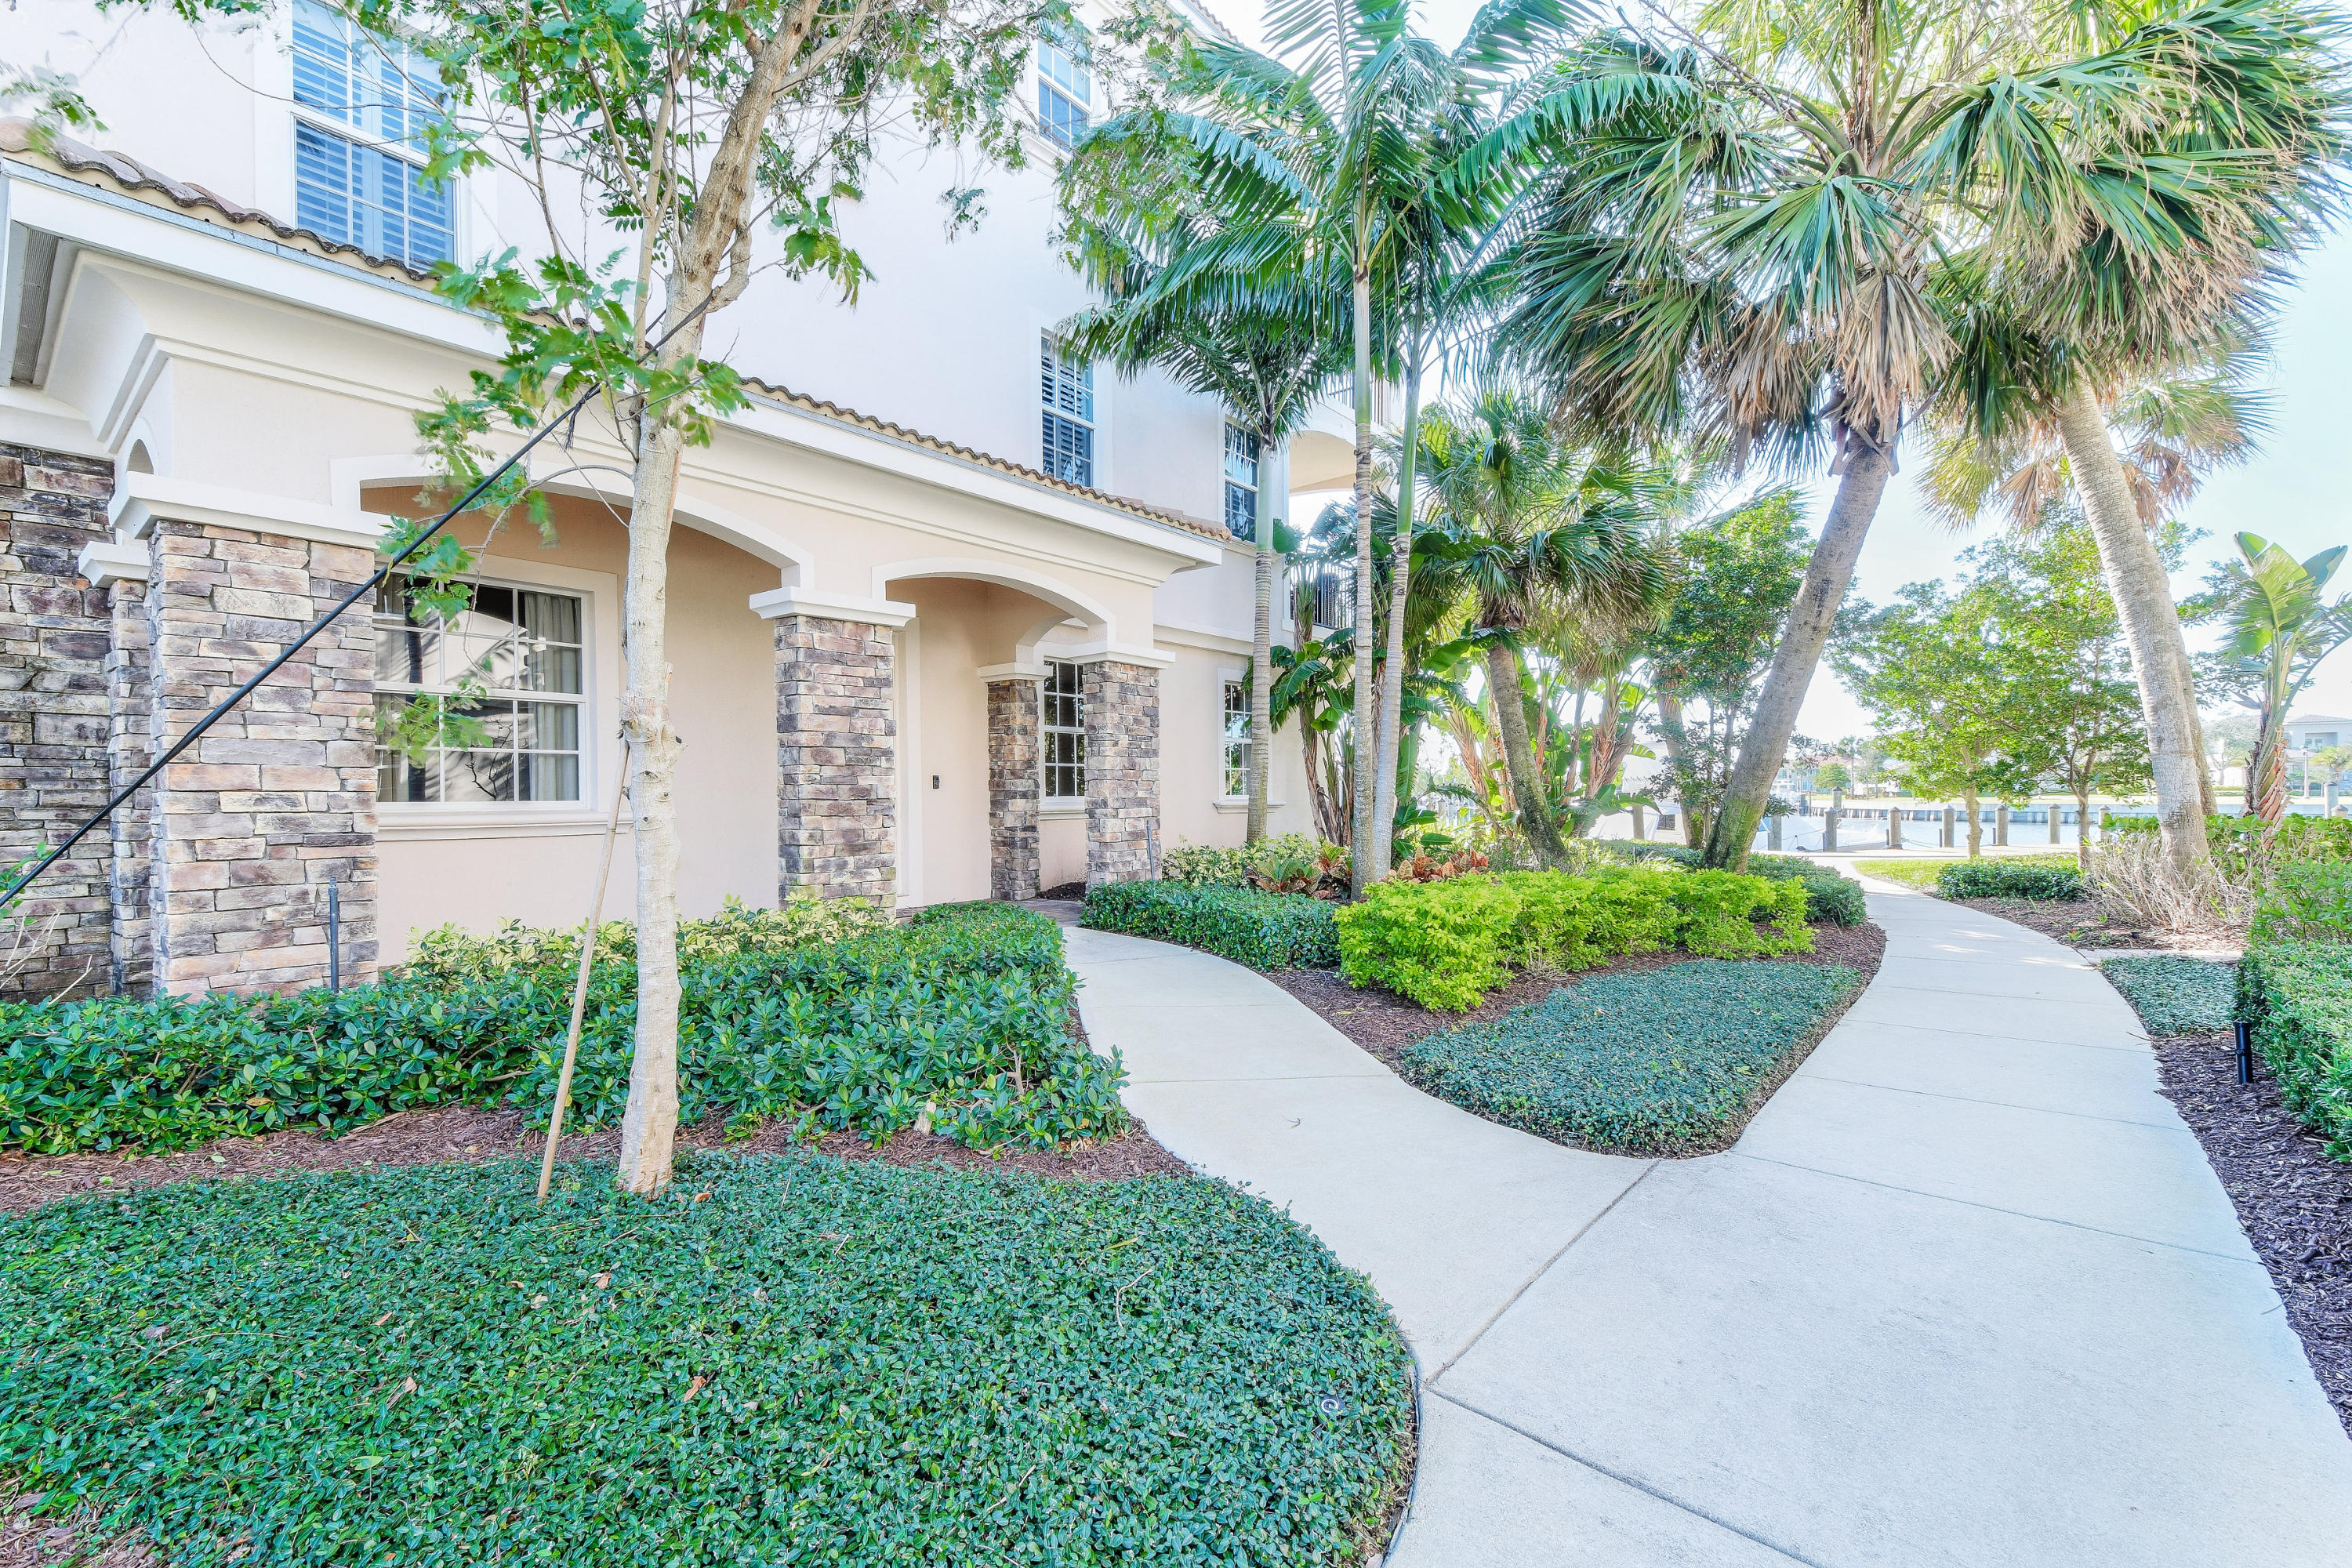 13541 Treasure Cove Circle 1, North Palm Beach, Florida 33408, 3 Bedrooms Bedrooms, ,2 BathroomsBathrooms,A,Condominium,Treasure Cove,RX-10494651